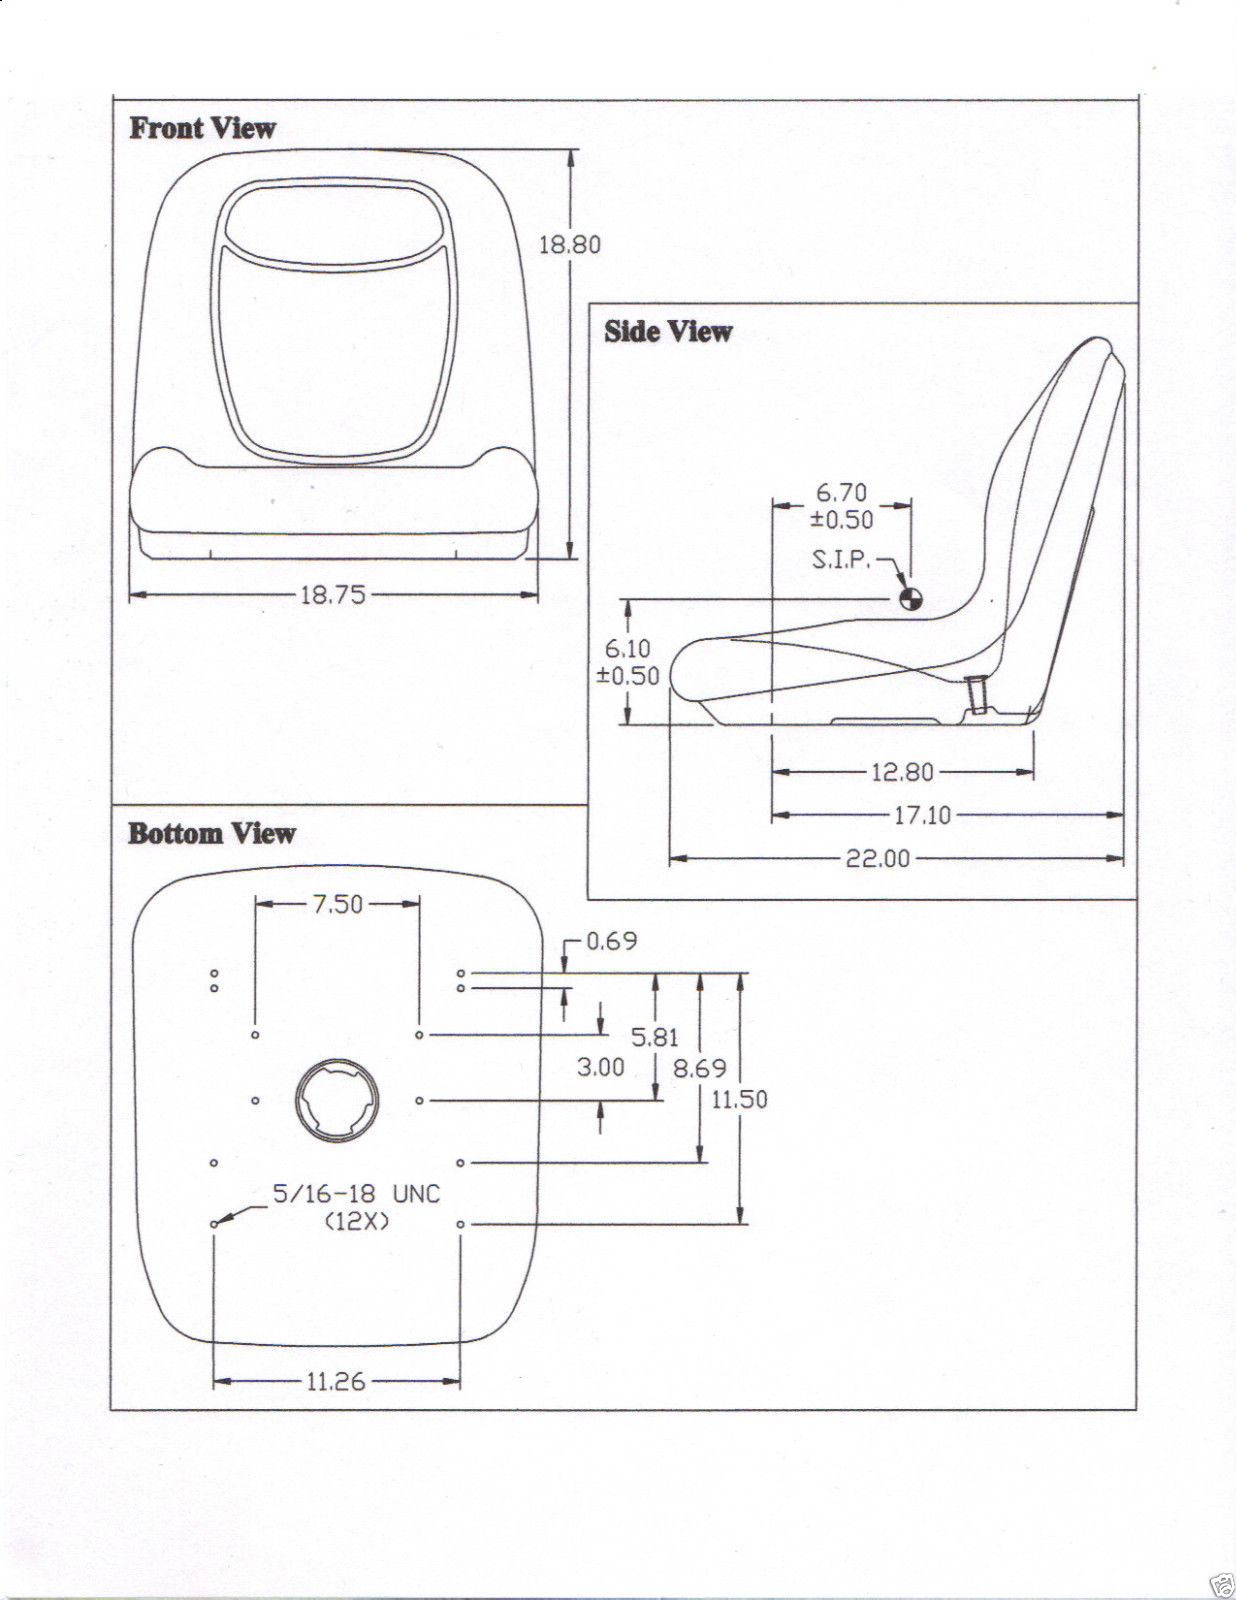 John Deere Cx Gator Wiring Diagram Free Download Diagrams 4x2 Two Yellow High Back Seats Jd 4x4 4x6 At 4020